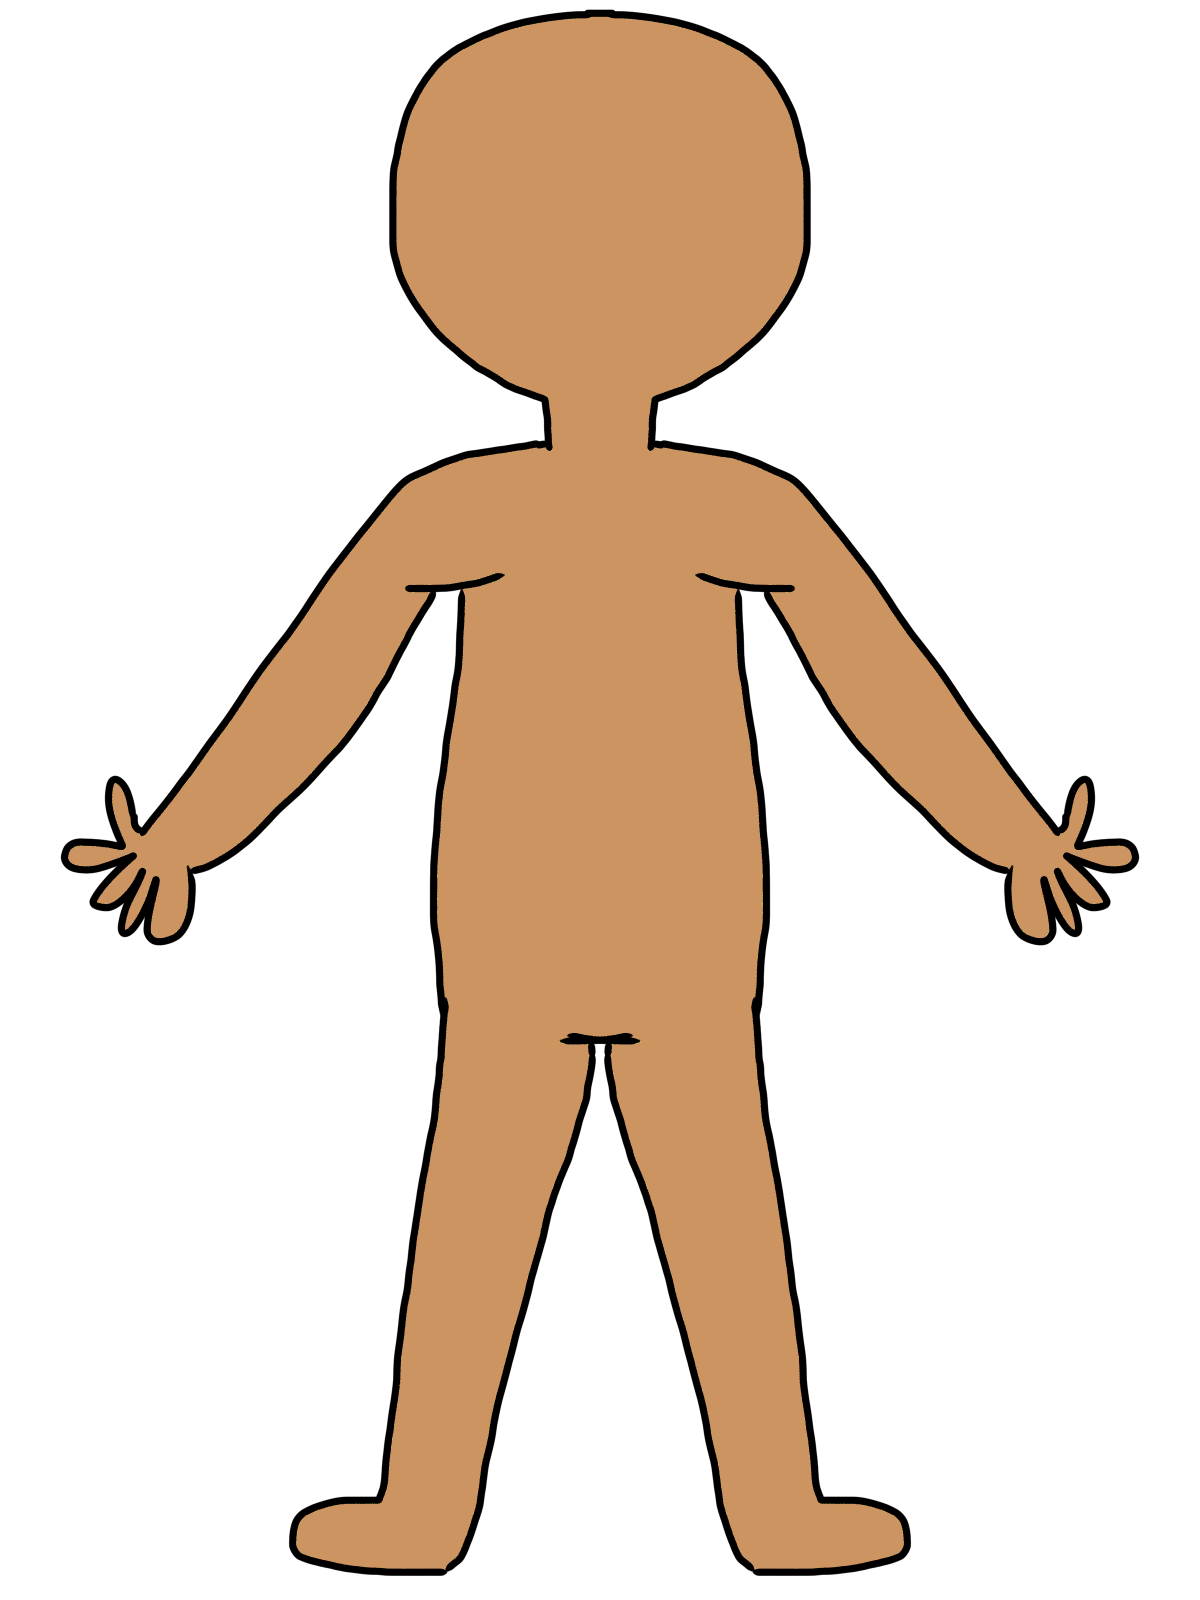 clipart human figure - photo #22